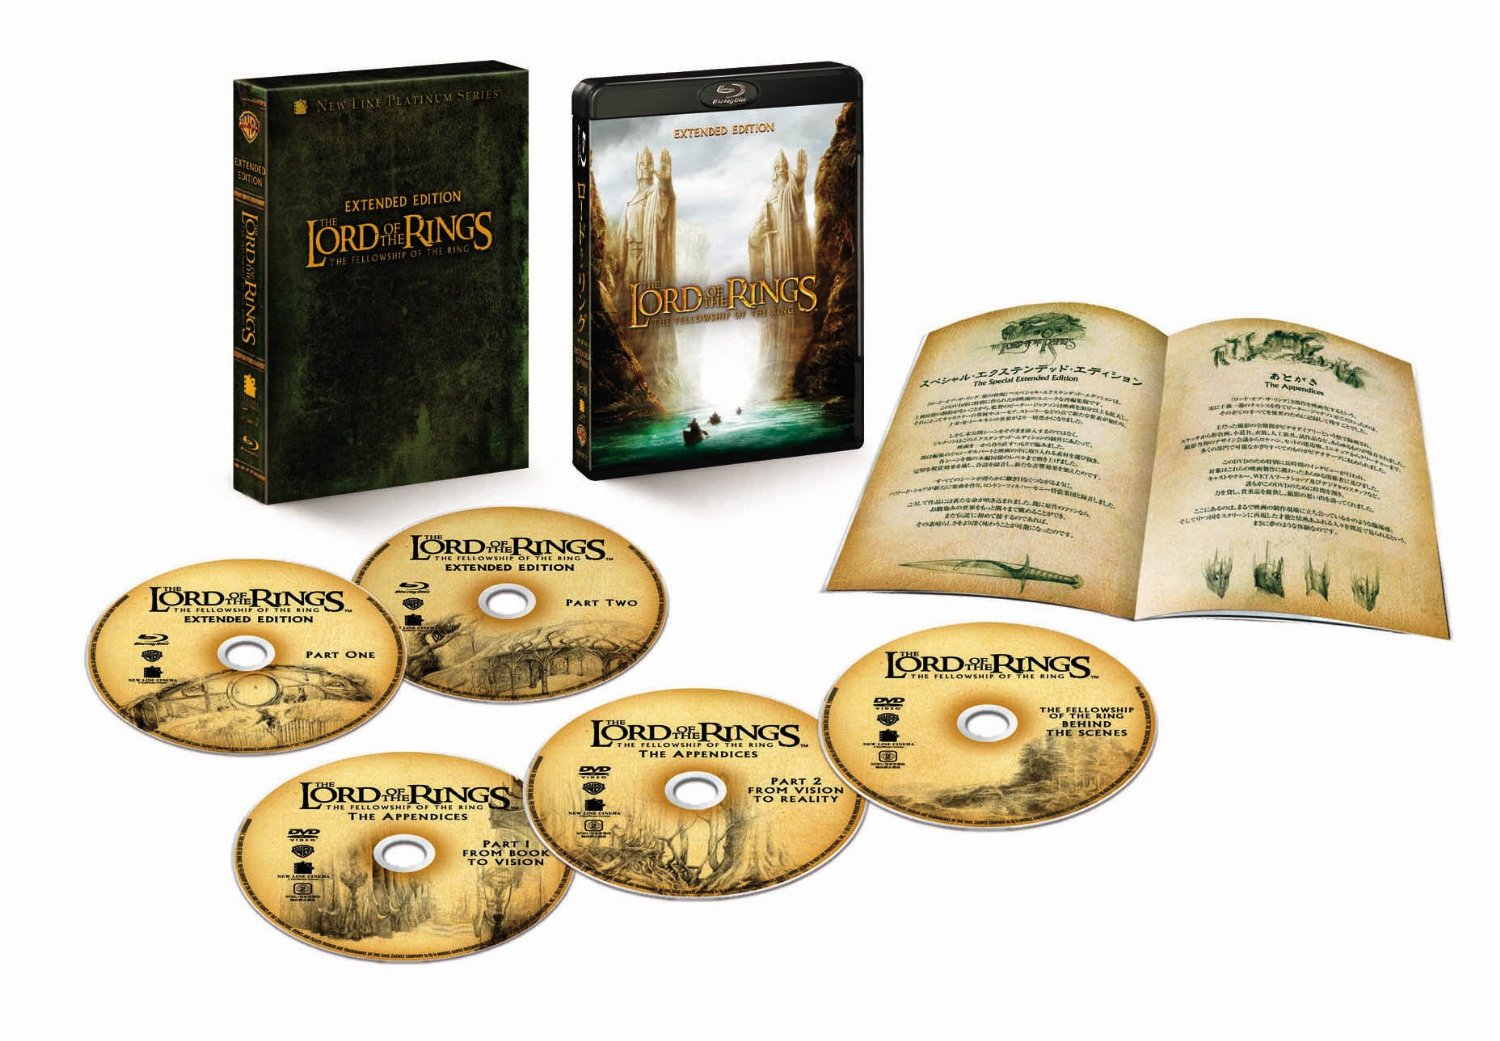 'The Lord of the Rings: The Fellowship of the Ring' on VOD ...